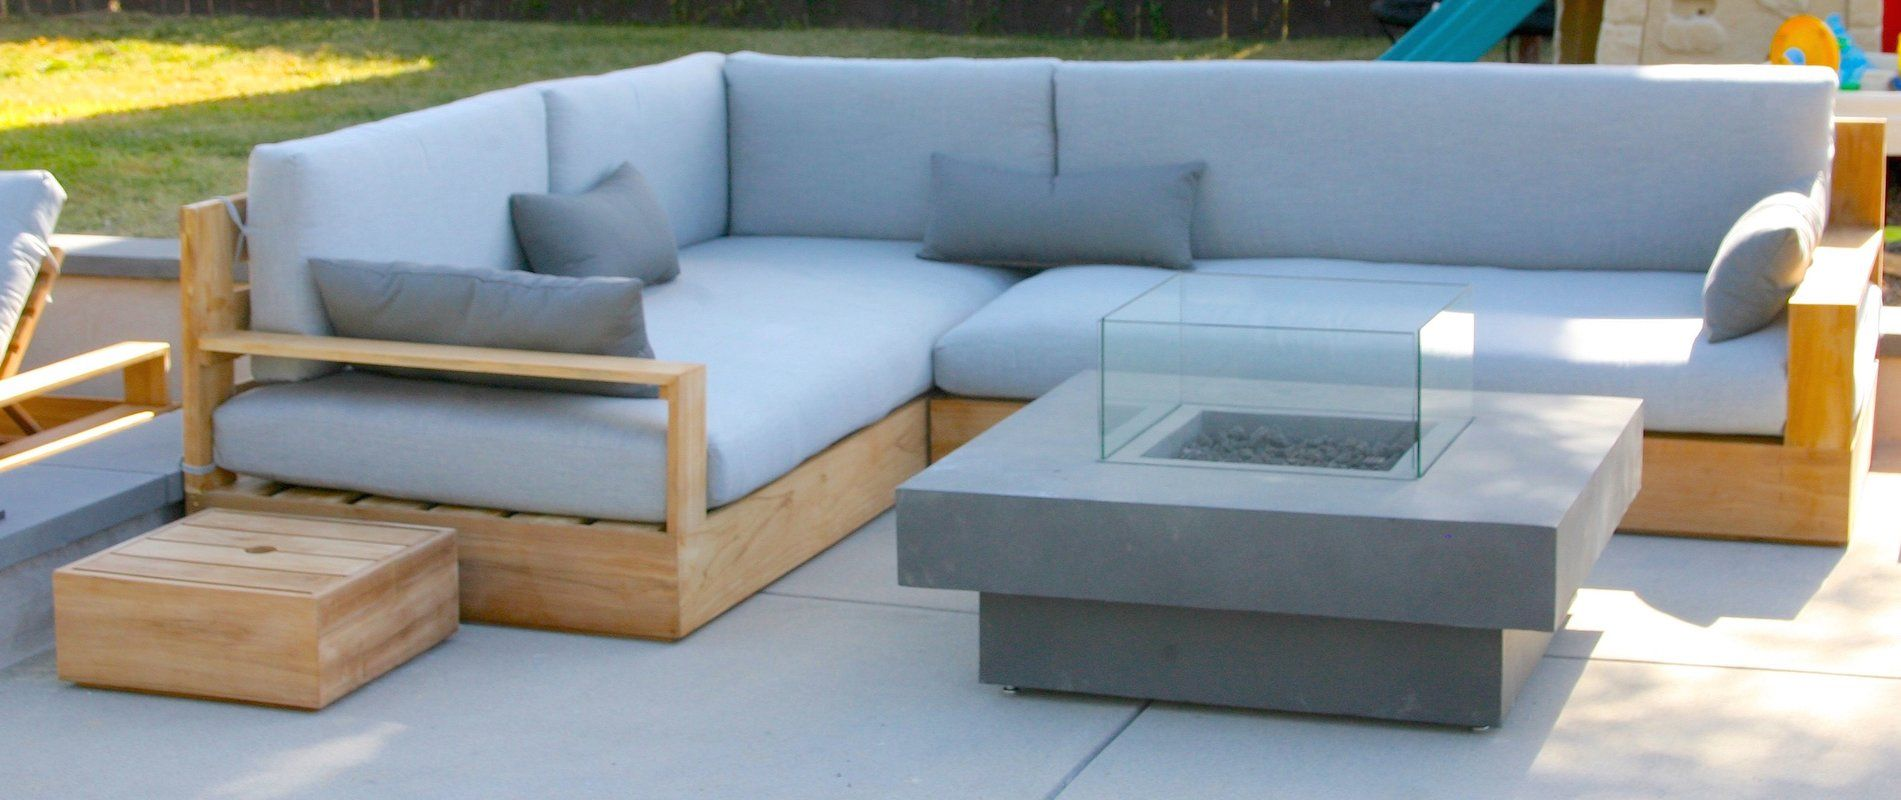 Bale 3 Piece Deep Seating Group With Sunbrella Cushion Outdoor